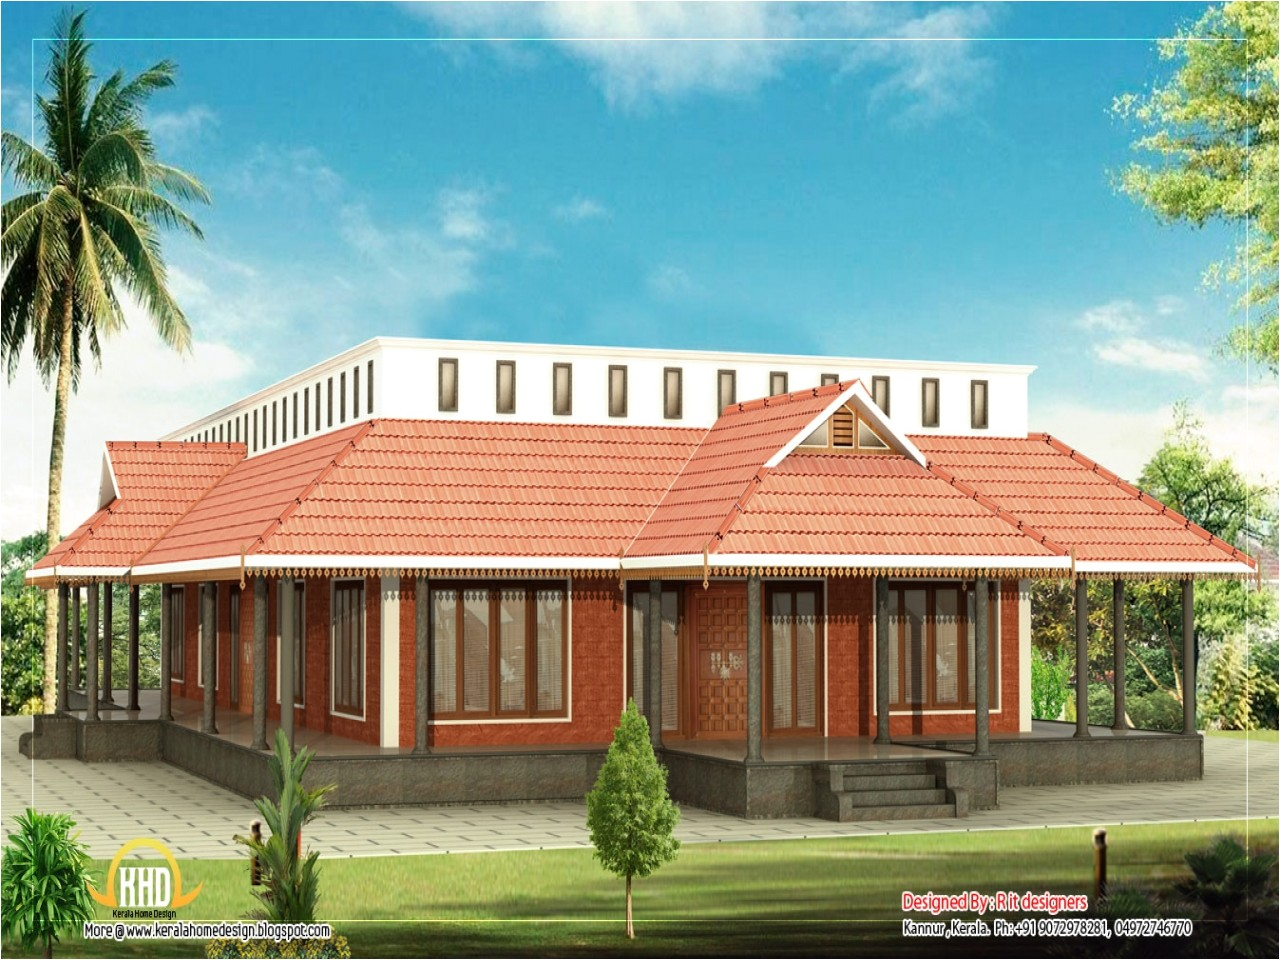 0255e64ab83c6b6e cabbage thoran kerala style kerala style single floor house plan